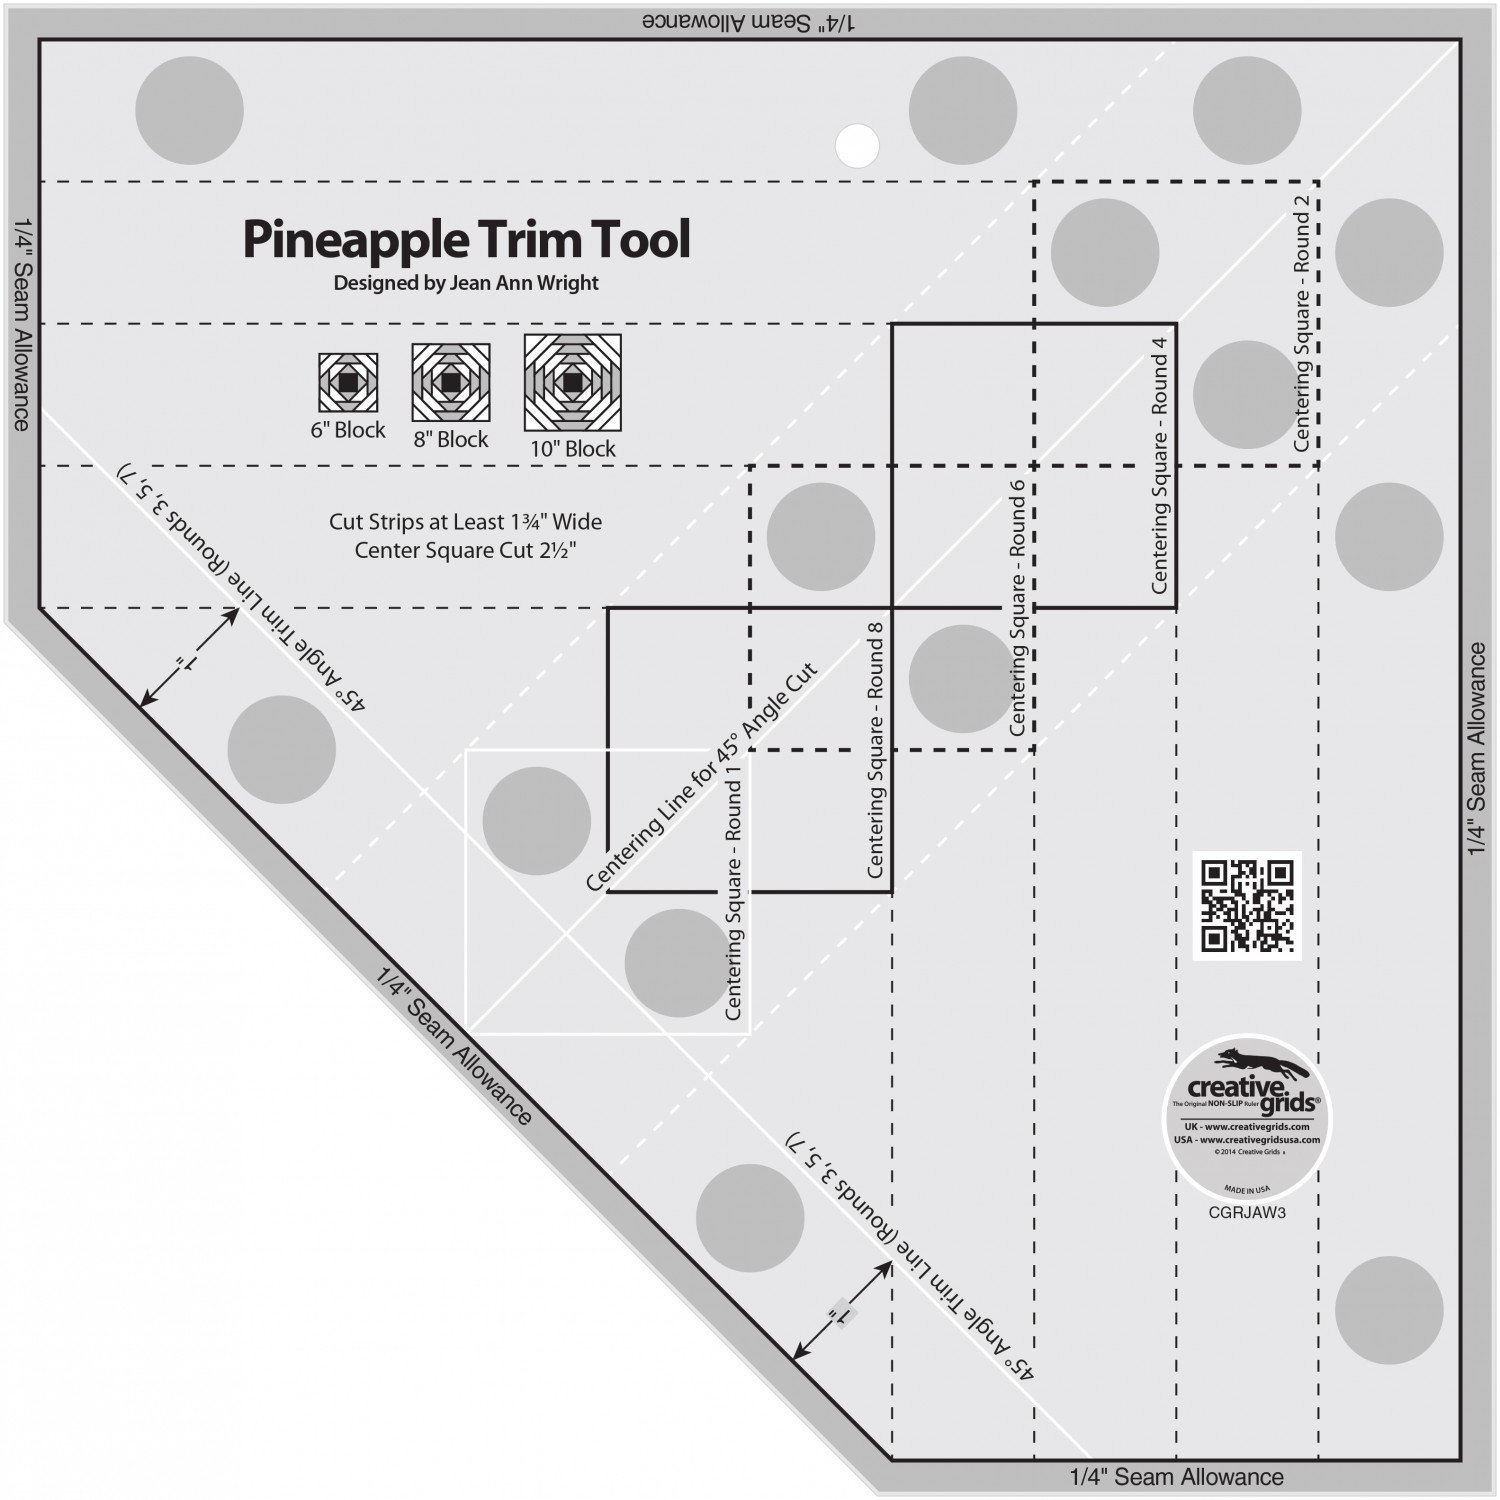 Creative Grids Pineapple Trim Tool for 6, 8 or 10in Finished Blocks Quilt Ruler